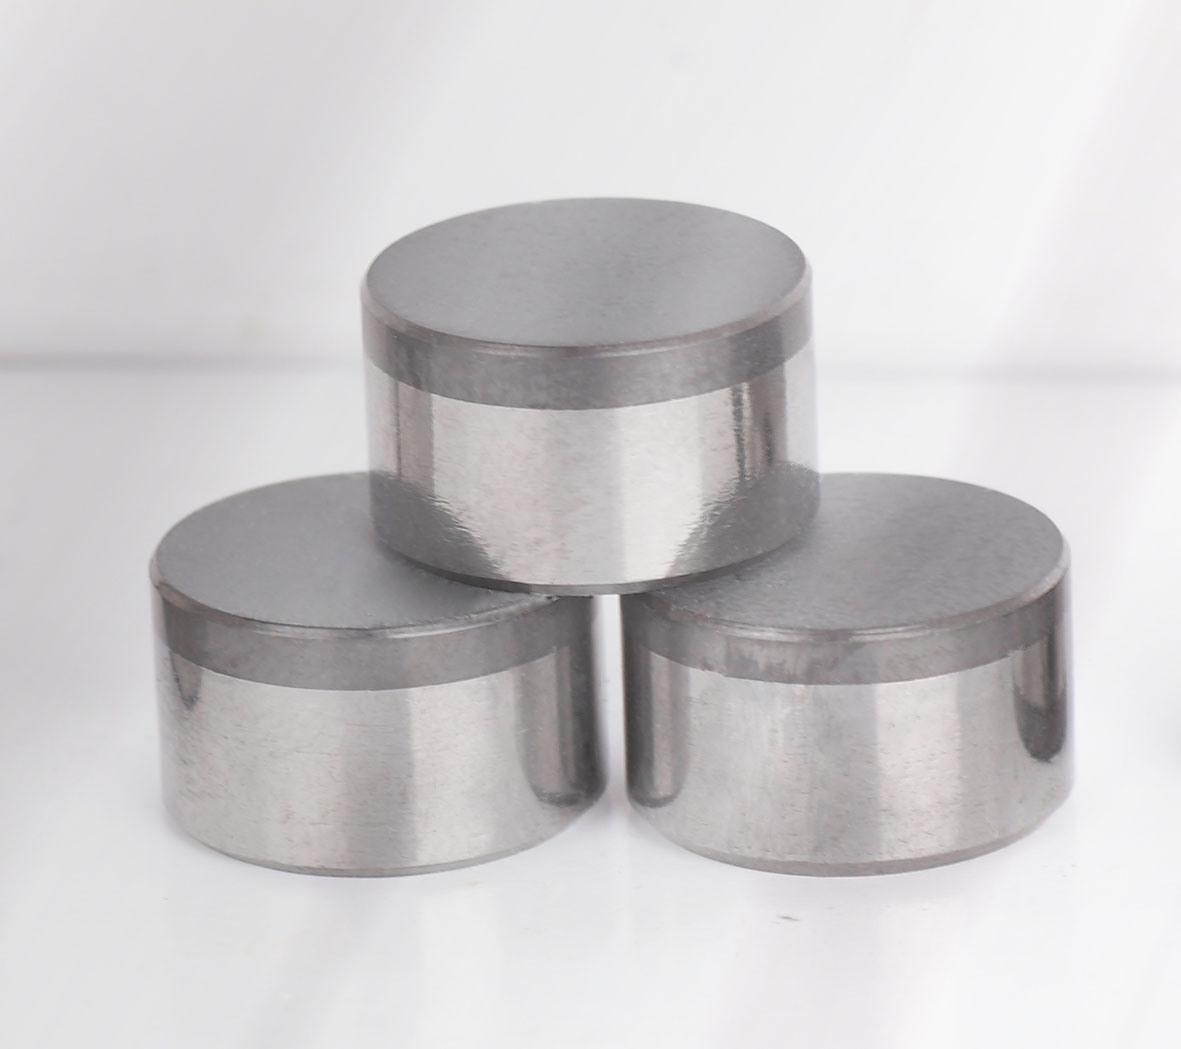 PDC Cutters for Fixed Cutter Bits - PDC Inserts for Rock Bits